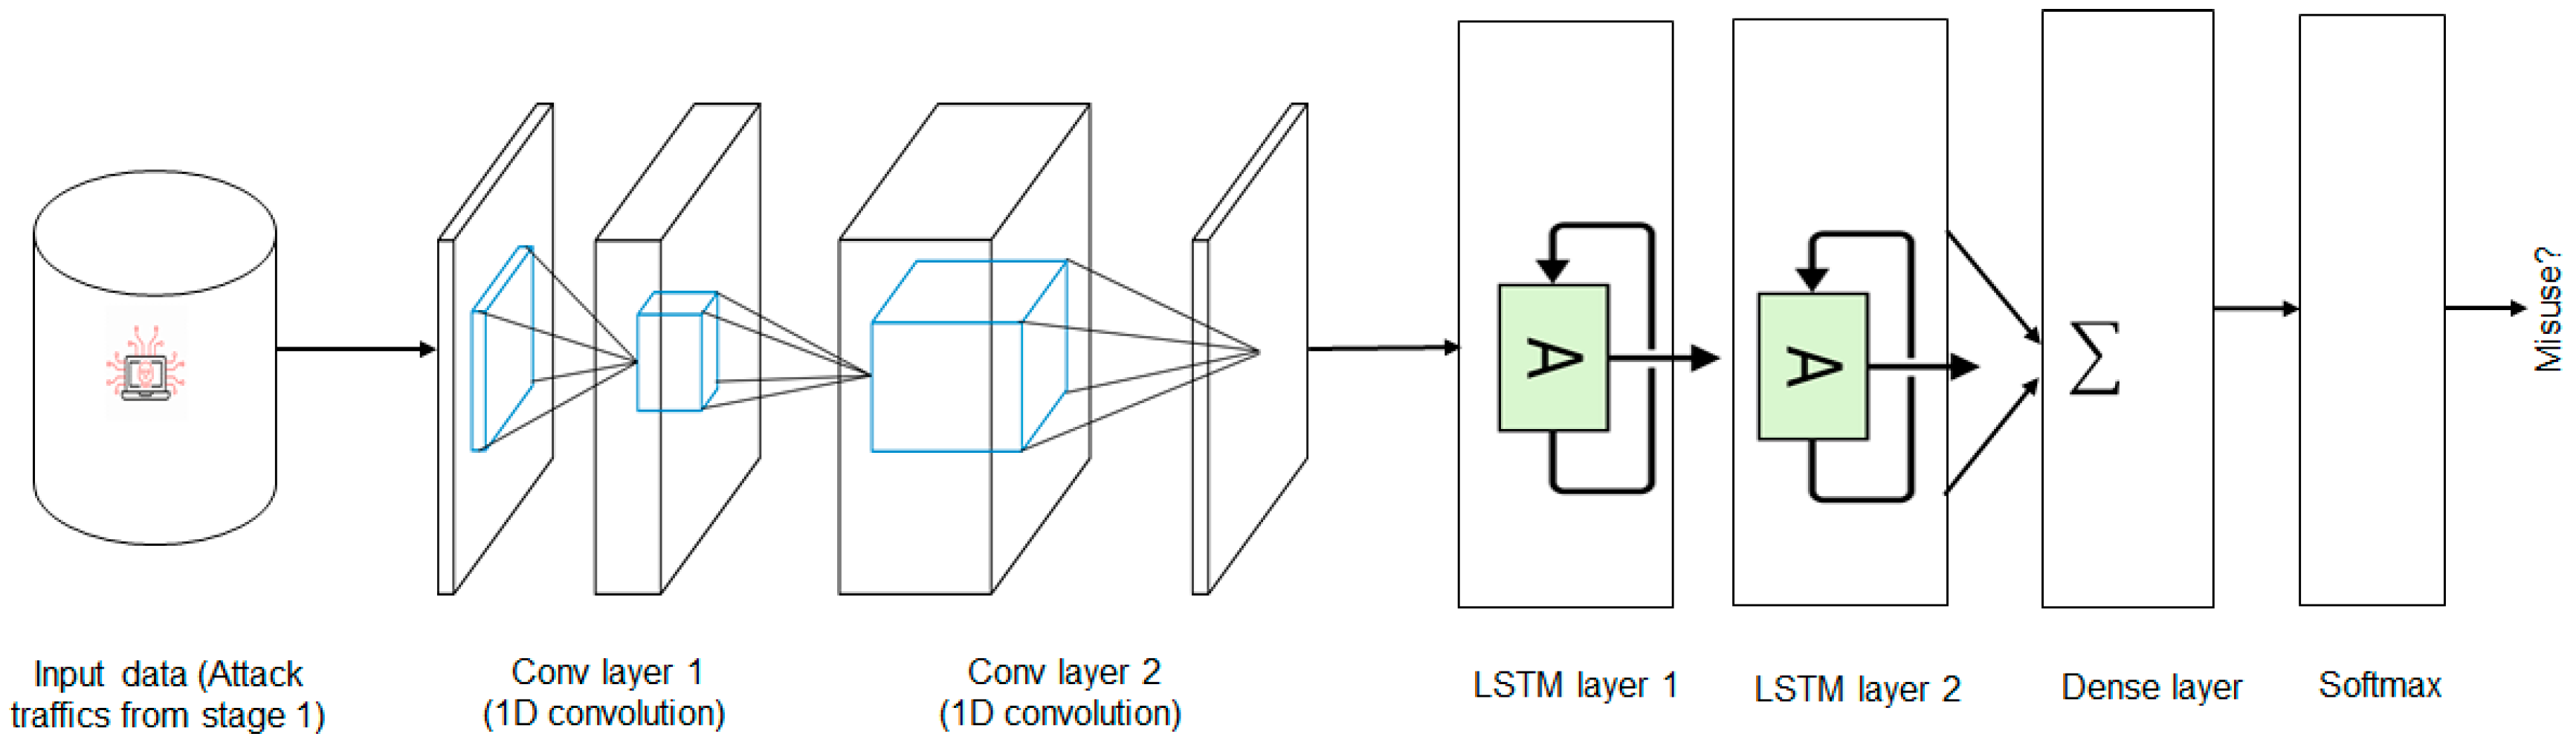 Symmetry | Free Full-Text | A Scalable and Hybrid Intrusion